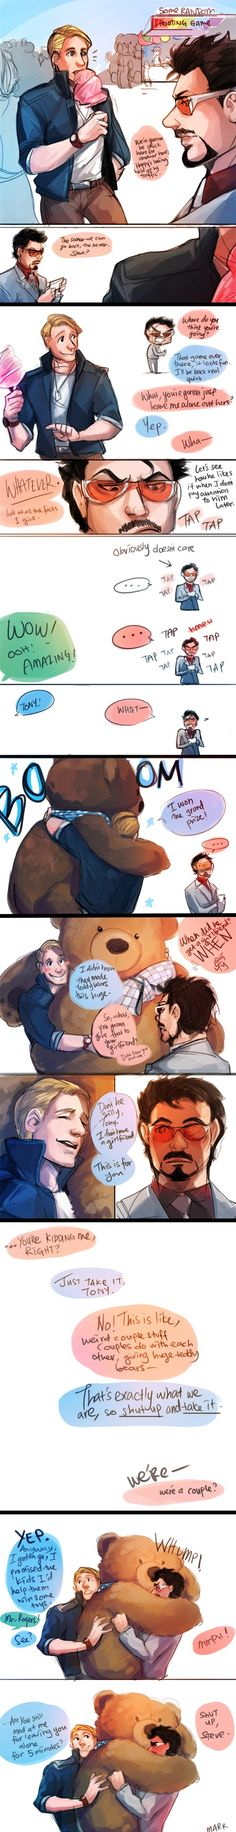 Not that I am a Rogers/Stark shipper..    but that giant teddy bear is cute.